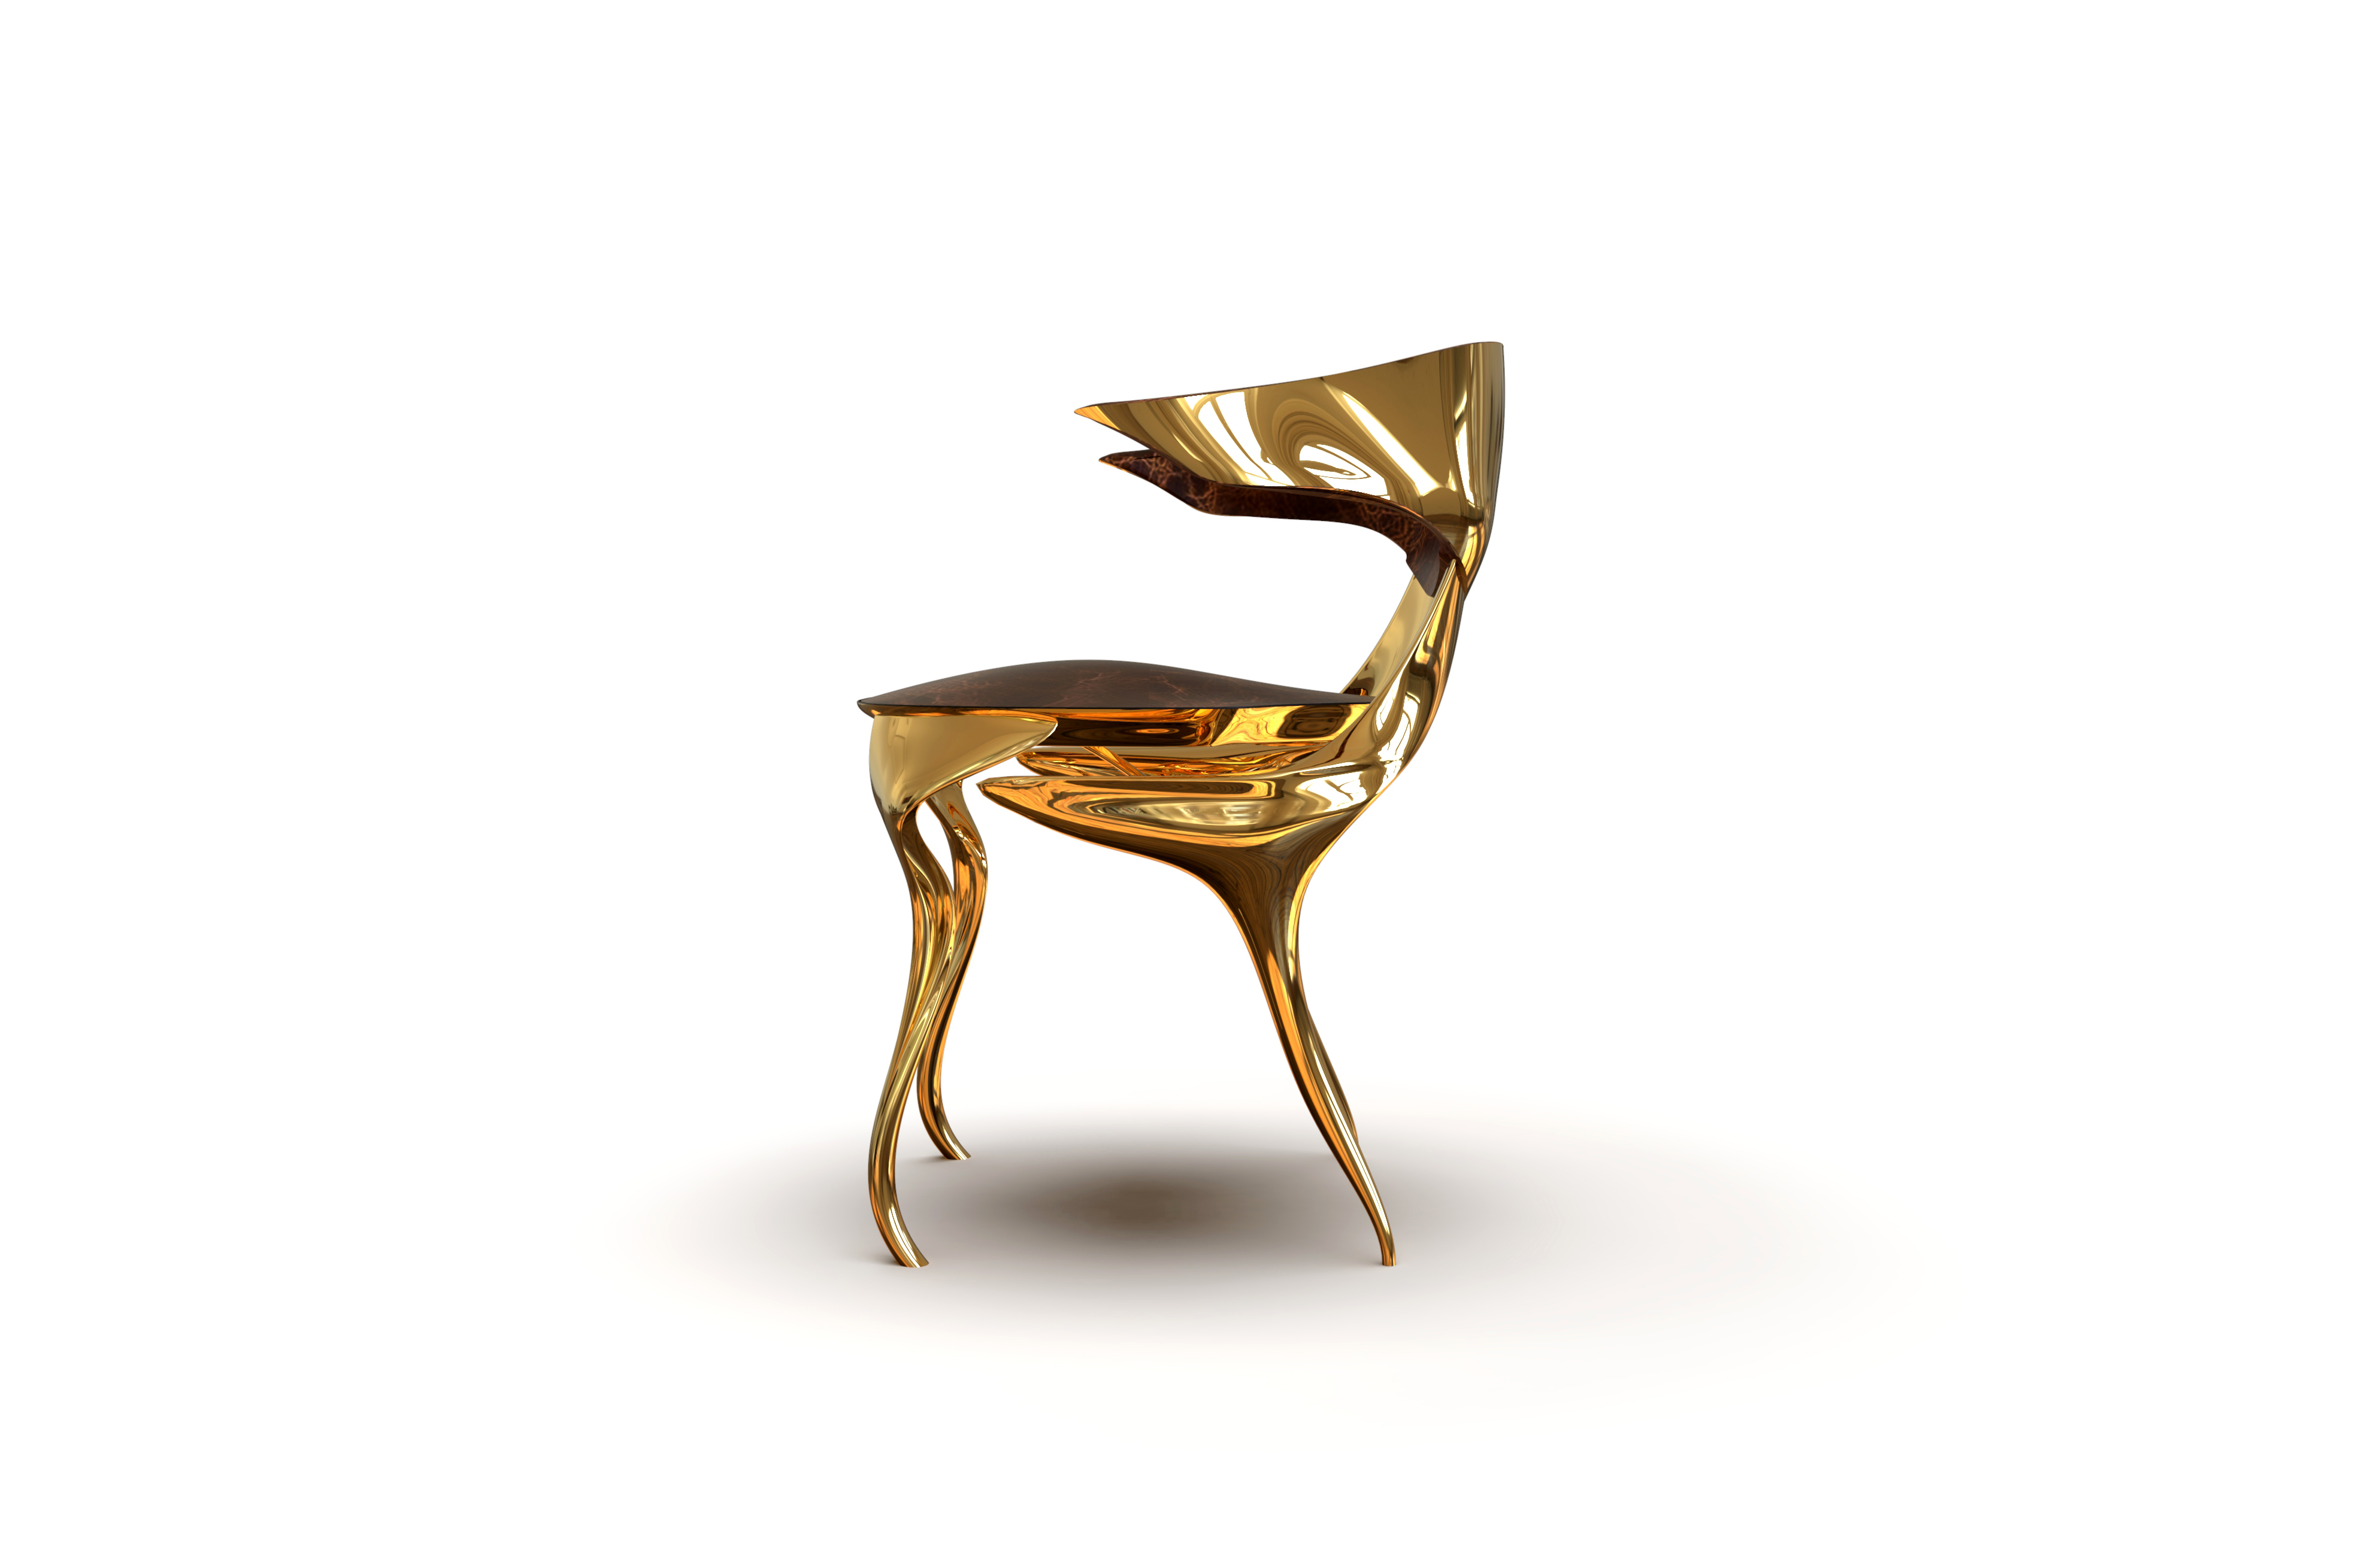 Abu Dhabi Chair